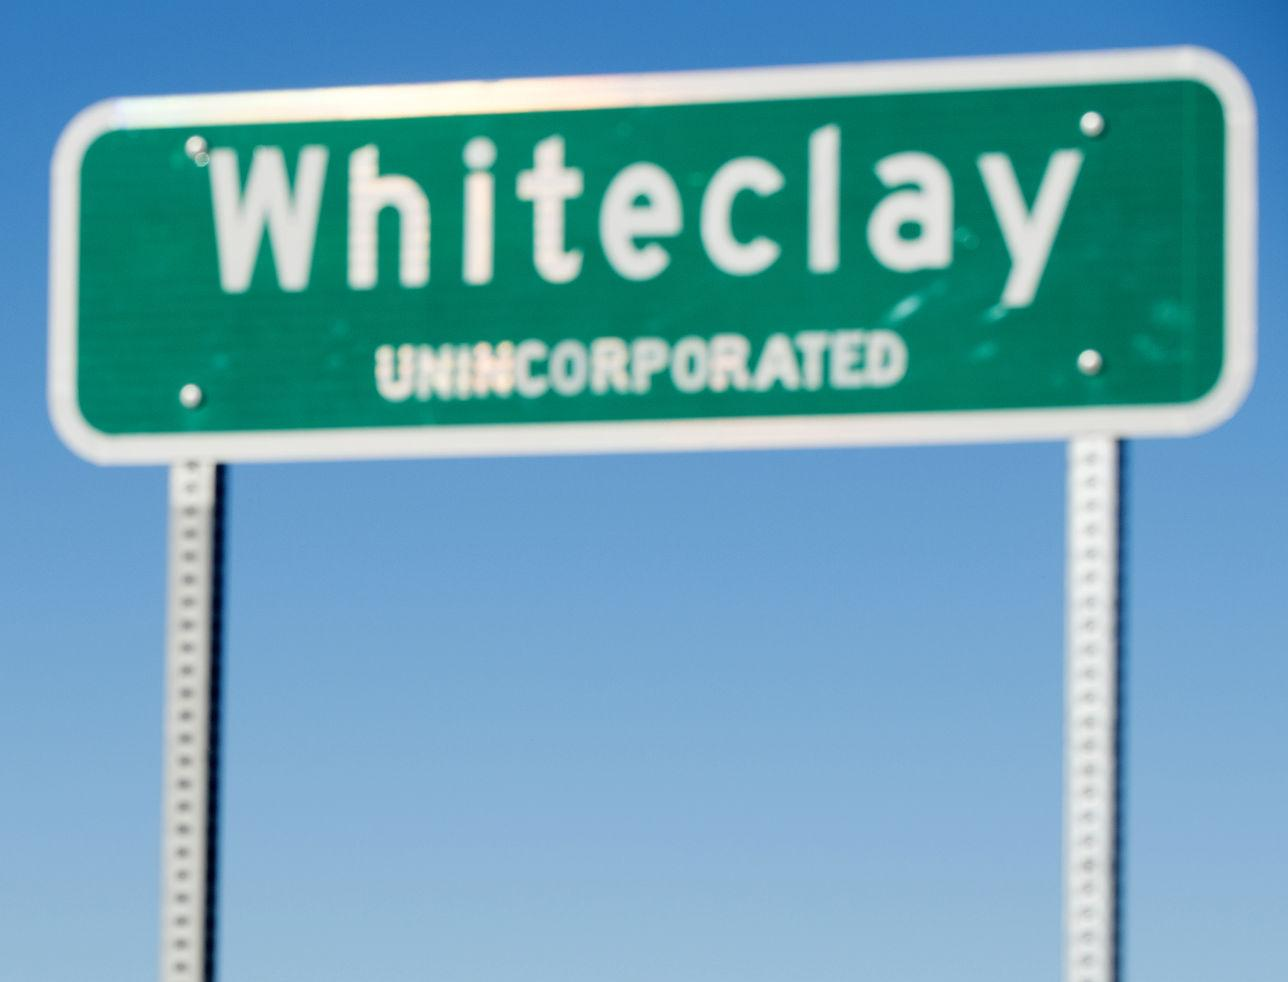 Whiteclay beer stores seek reversal of Liquor Commission decision to close them